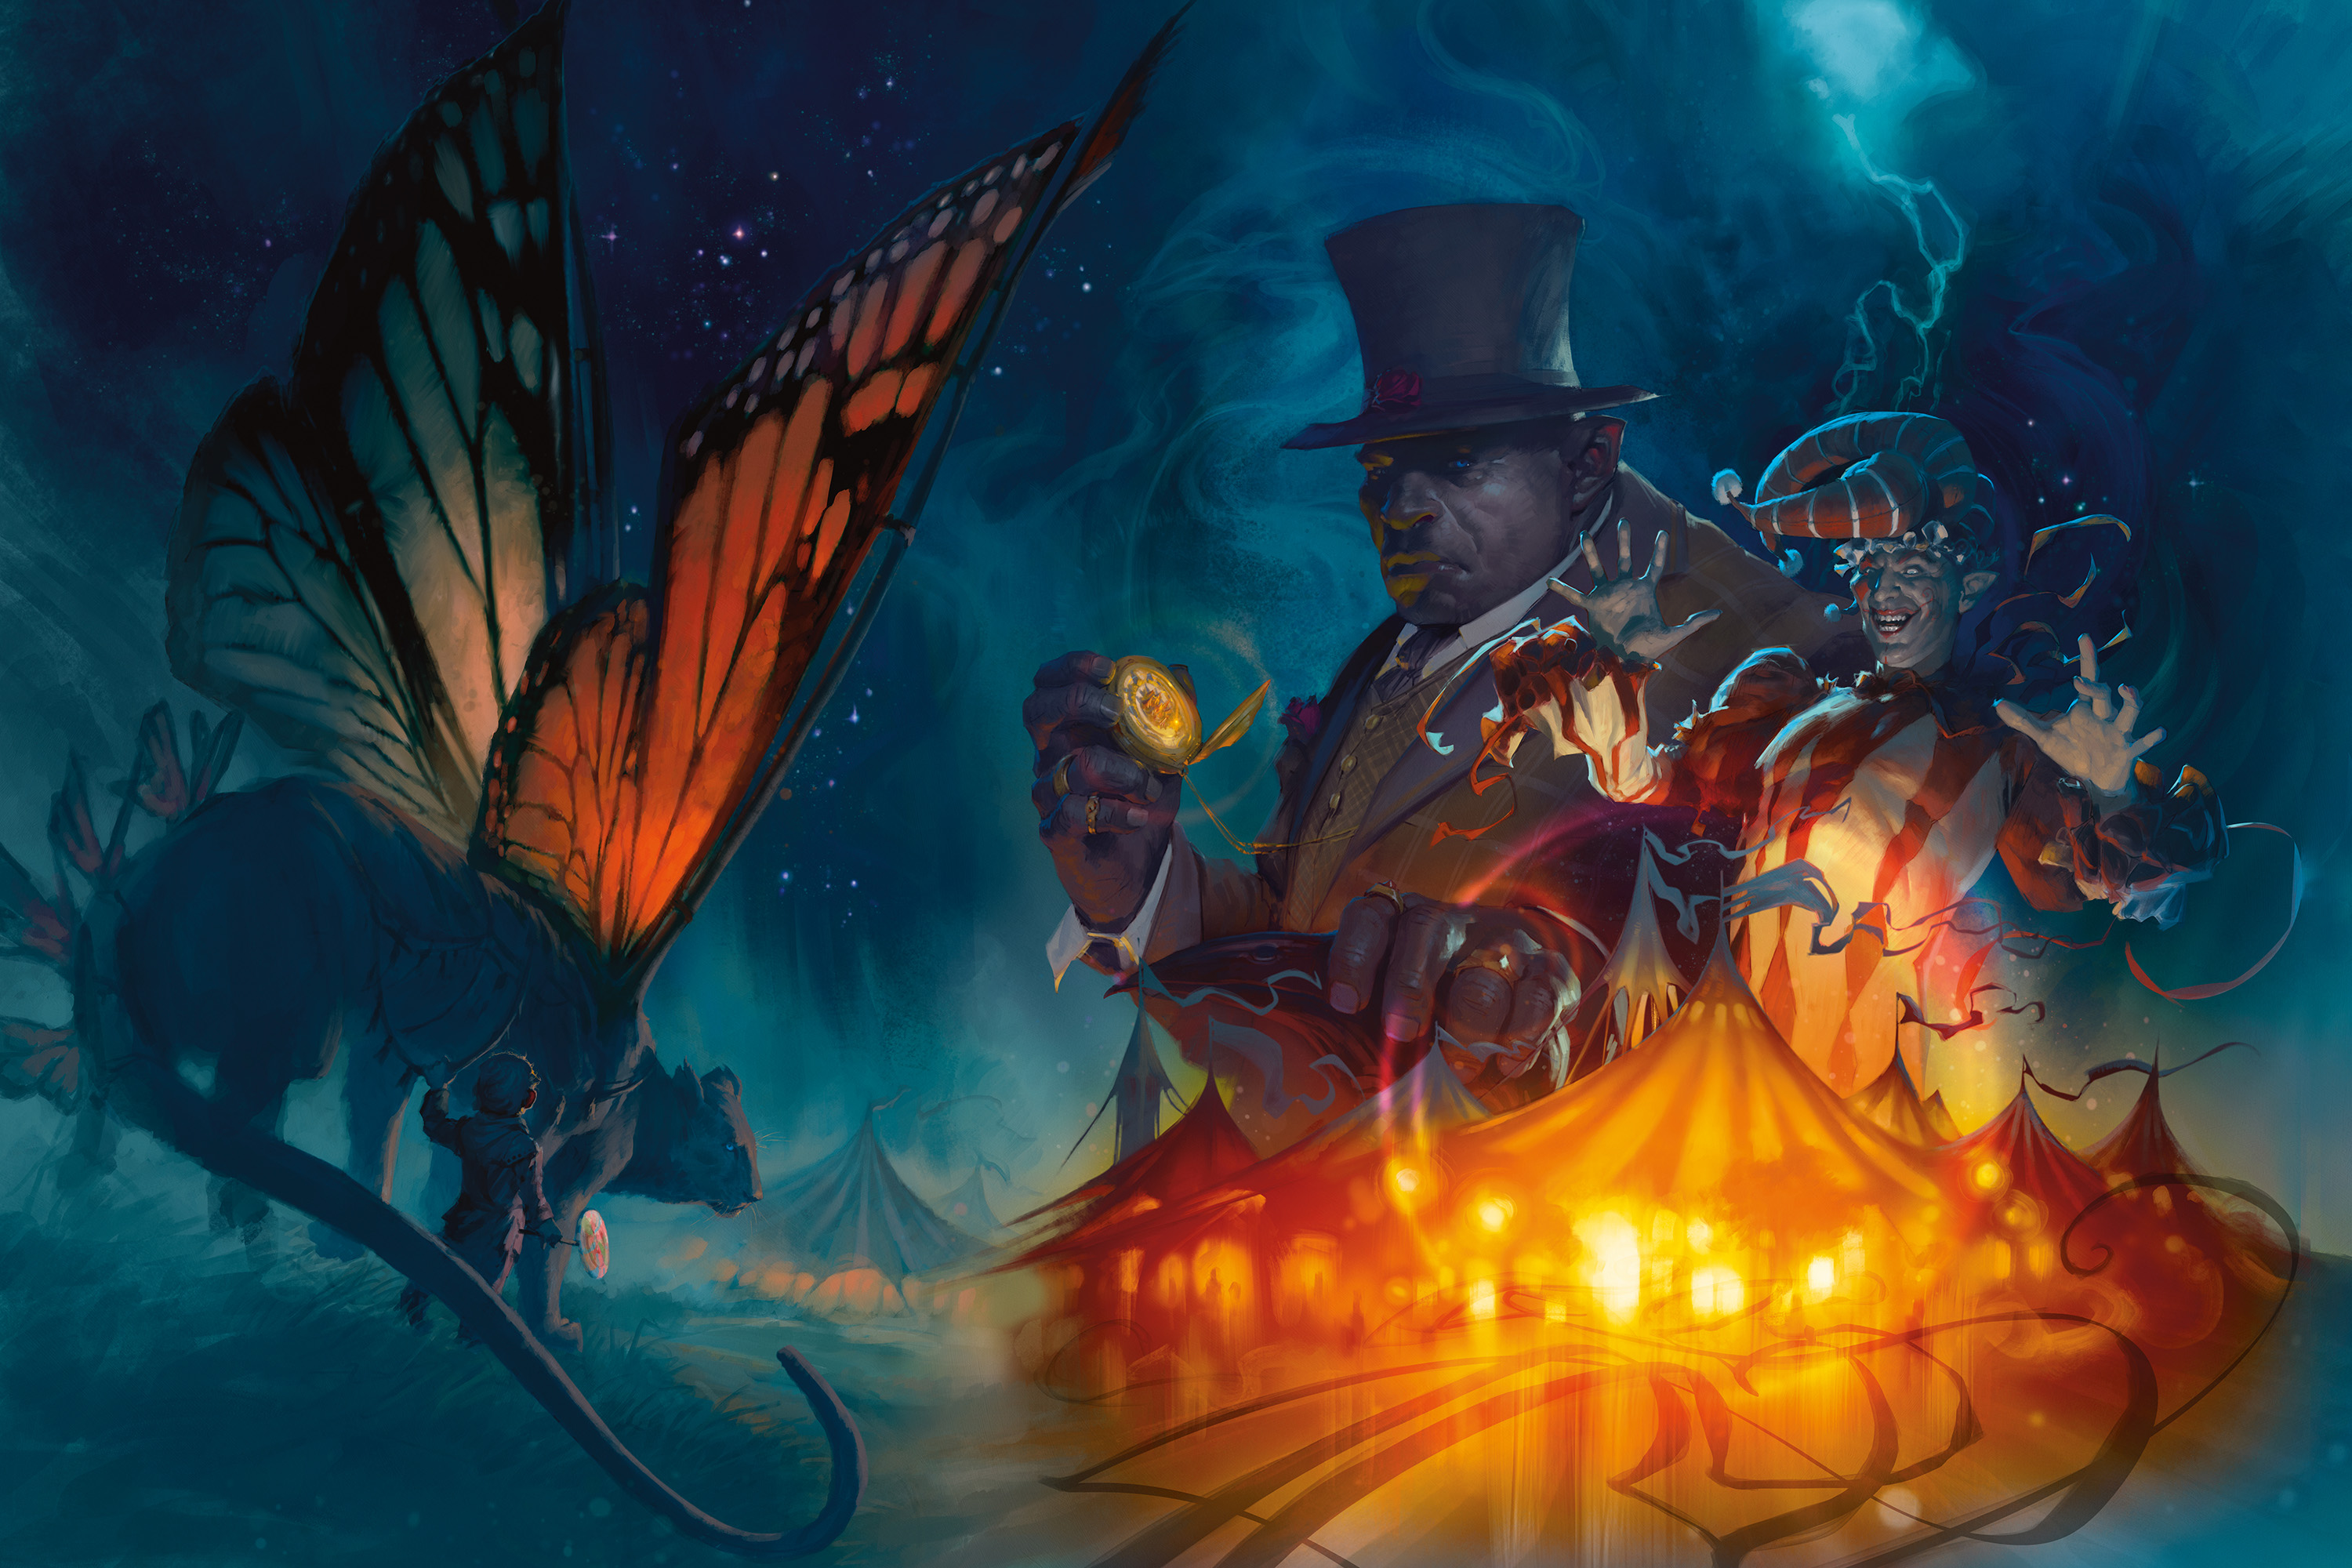 A feline creature with the wings of a butterfly looks on as a spectral circus looms in the night. An orc in a top hat with a pocket watch stands next to a clown.